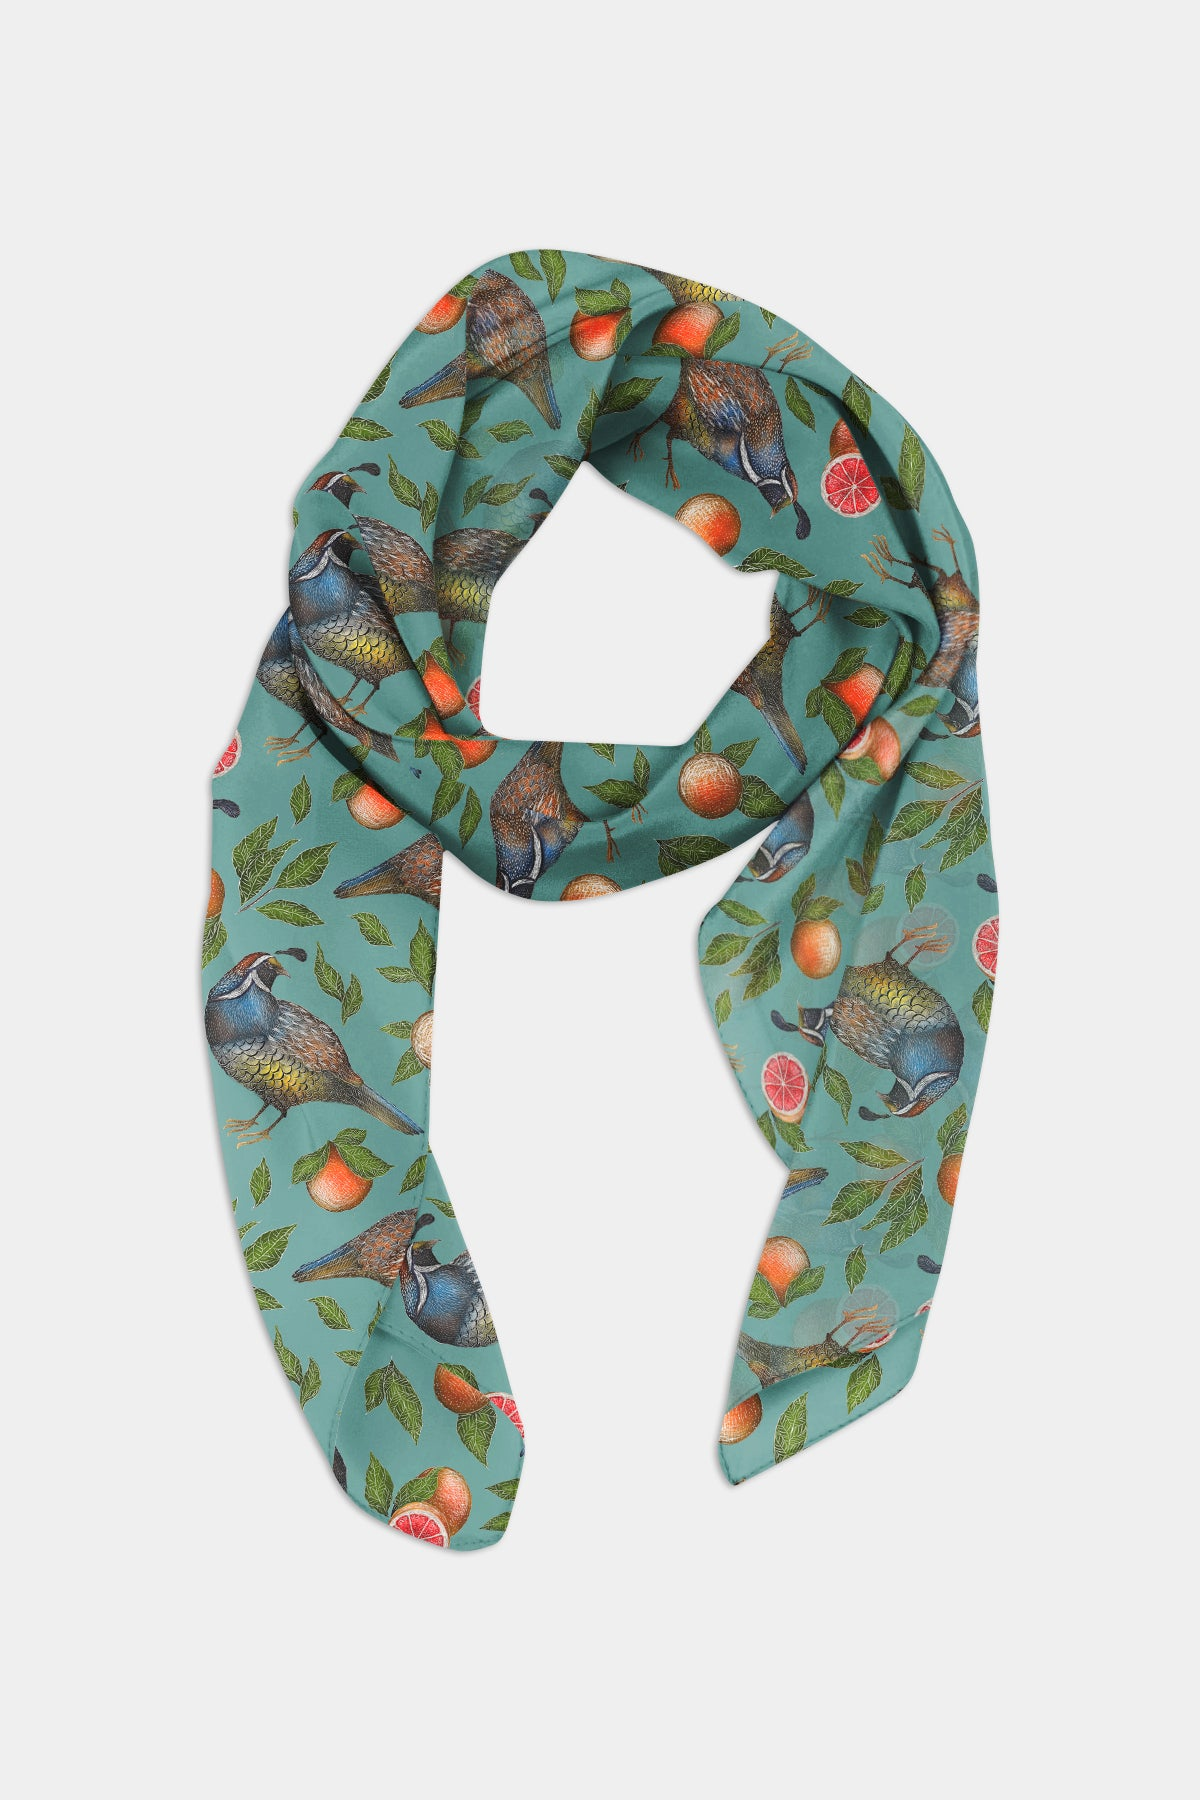 Quails and Grapefruits Chiffon Scarf - 100% Silk or Vegan Silk